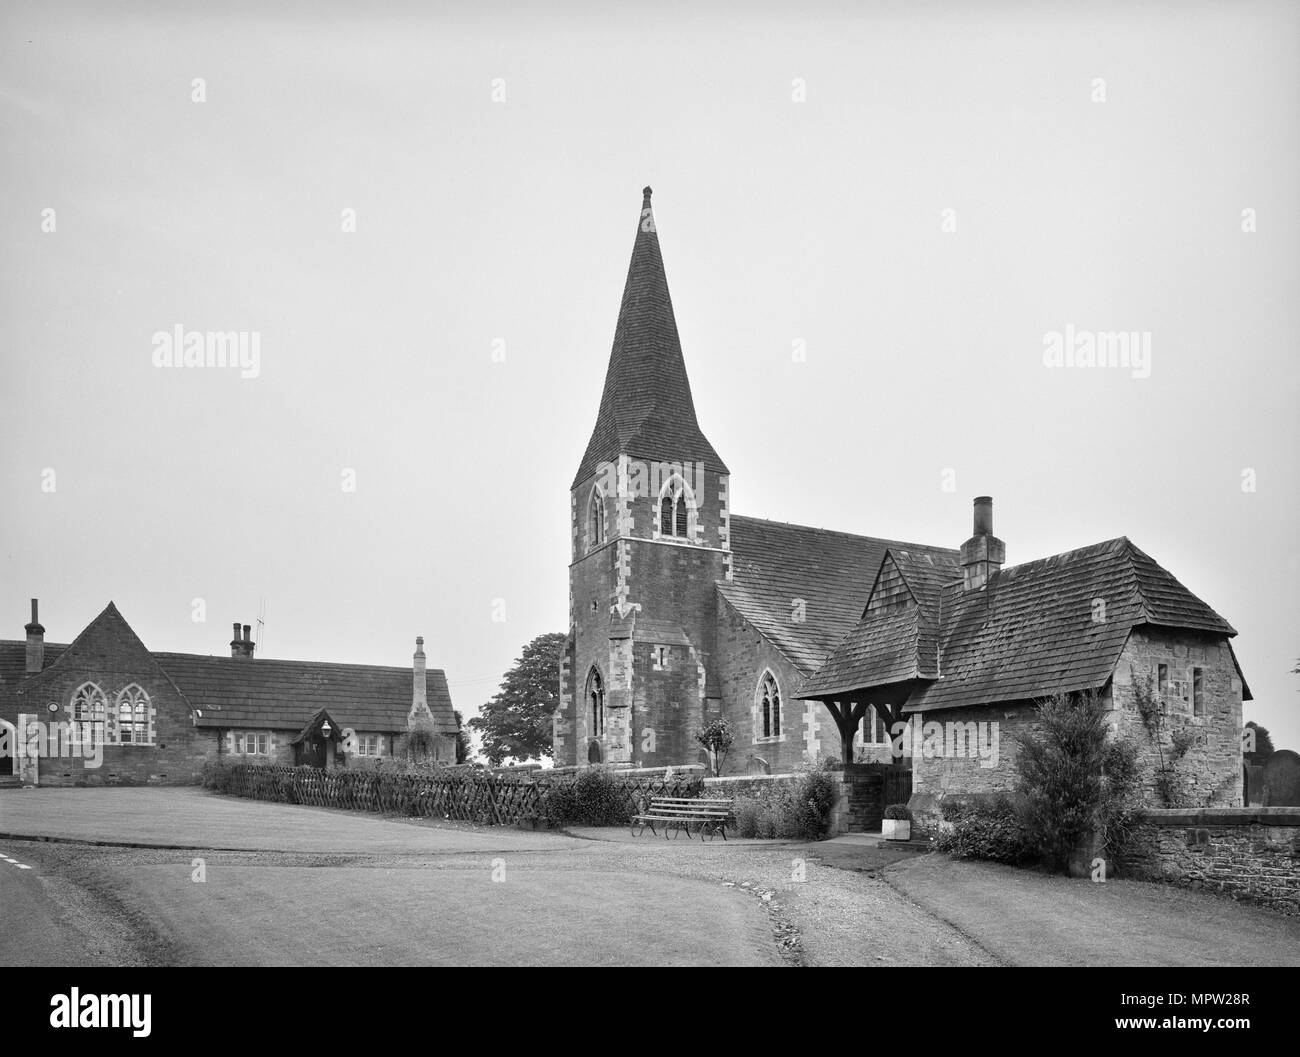 St Cuthbert's Church, Church Lane, Sessay, North Yorkshire, 1966. Artist: Gordon Barnes. - Stock Image